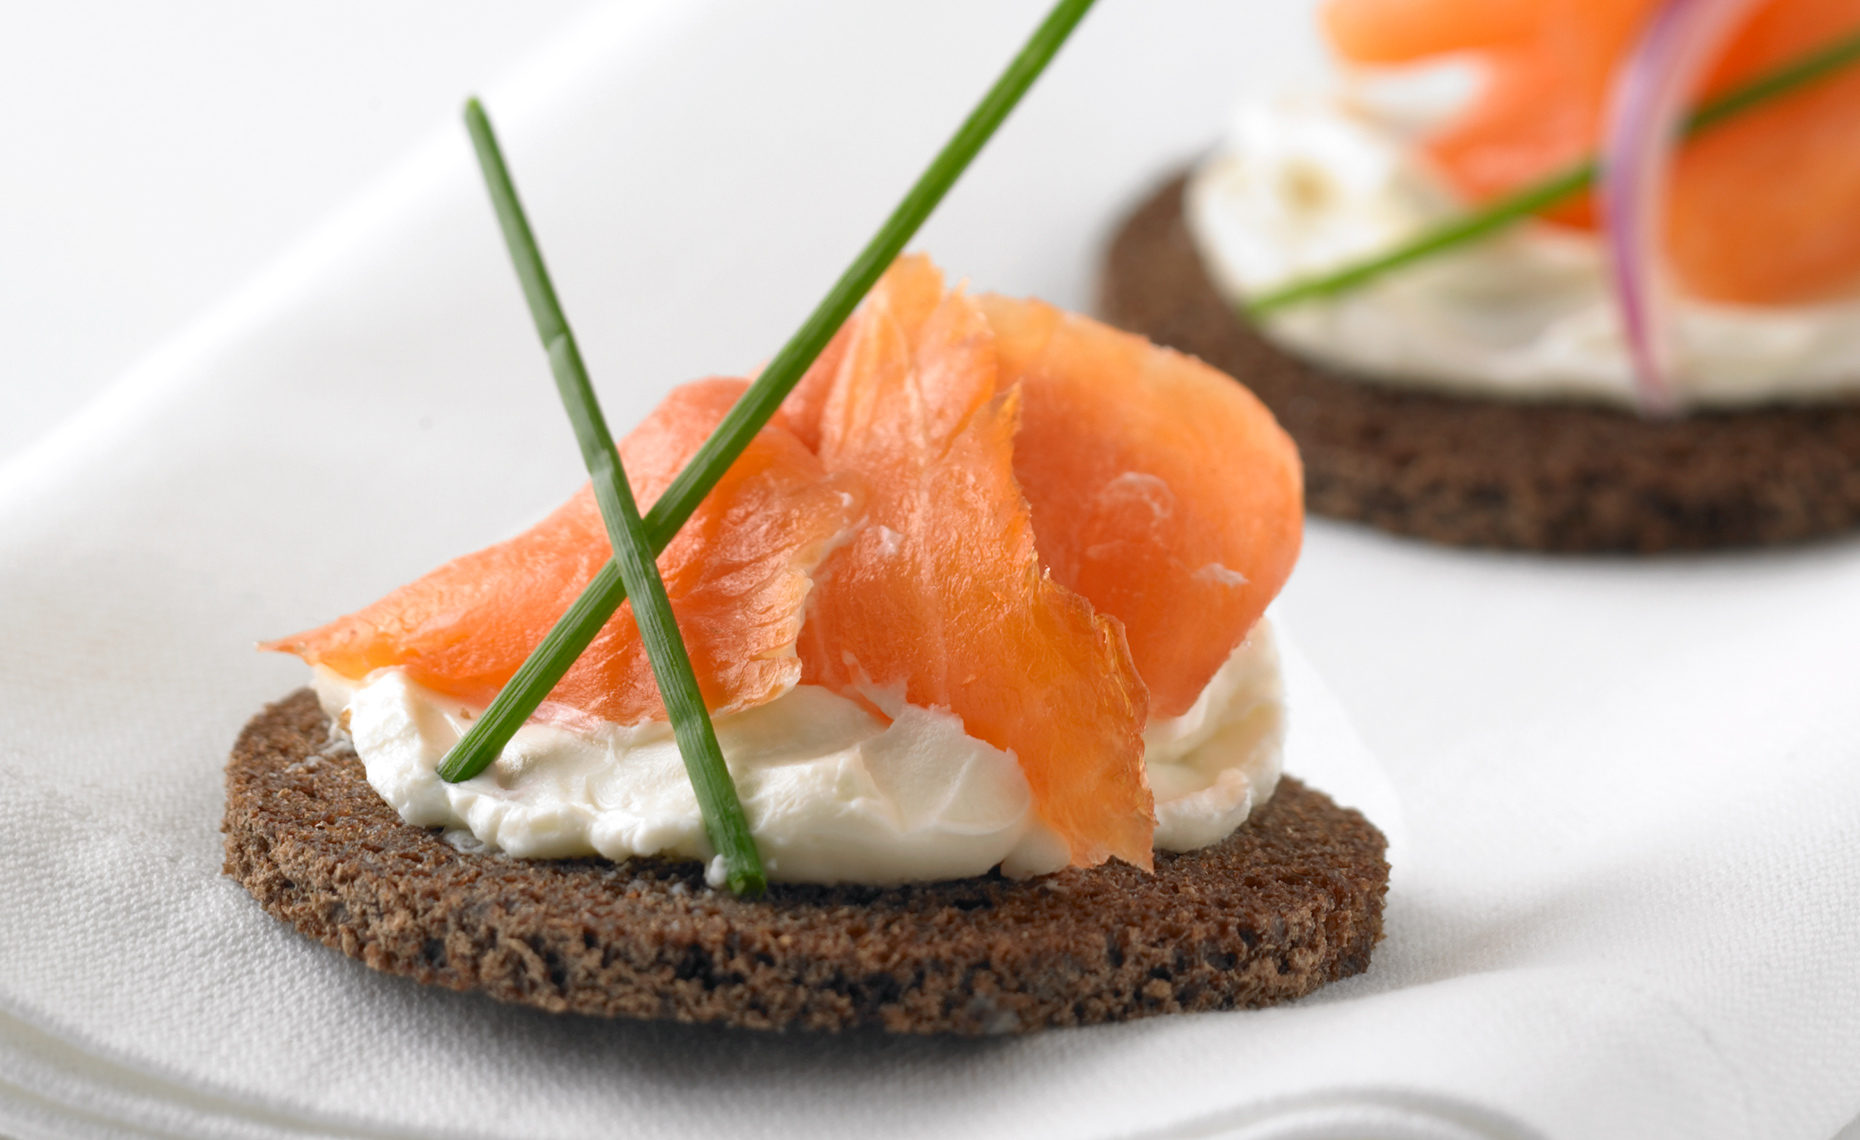 Food Photographer, Seafood Photography, Appetizer Photography | Pohuski Studios,  Smoked Salmon